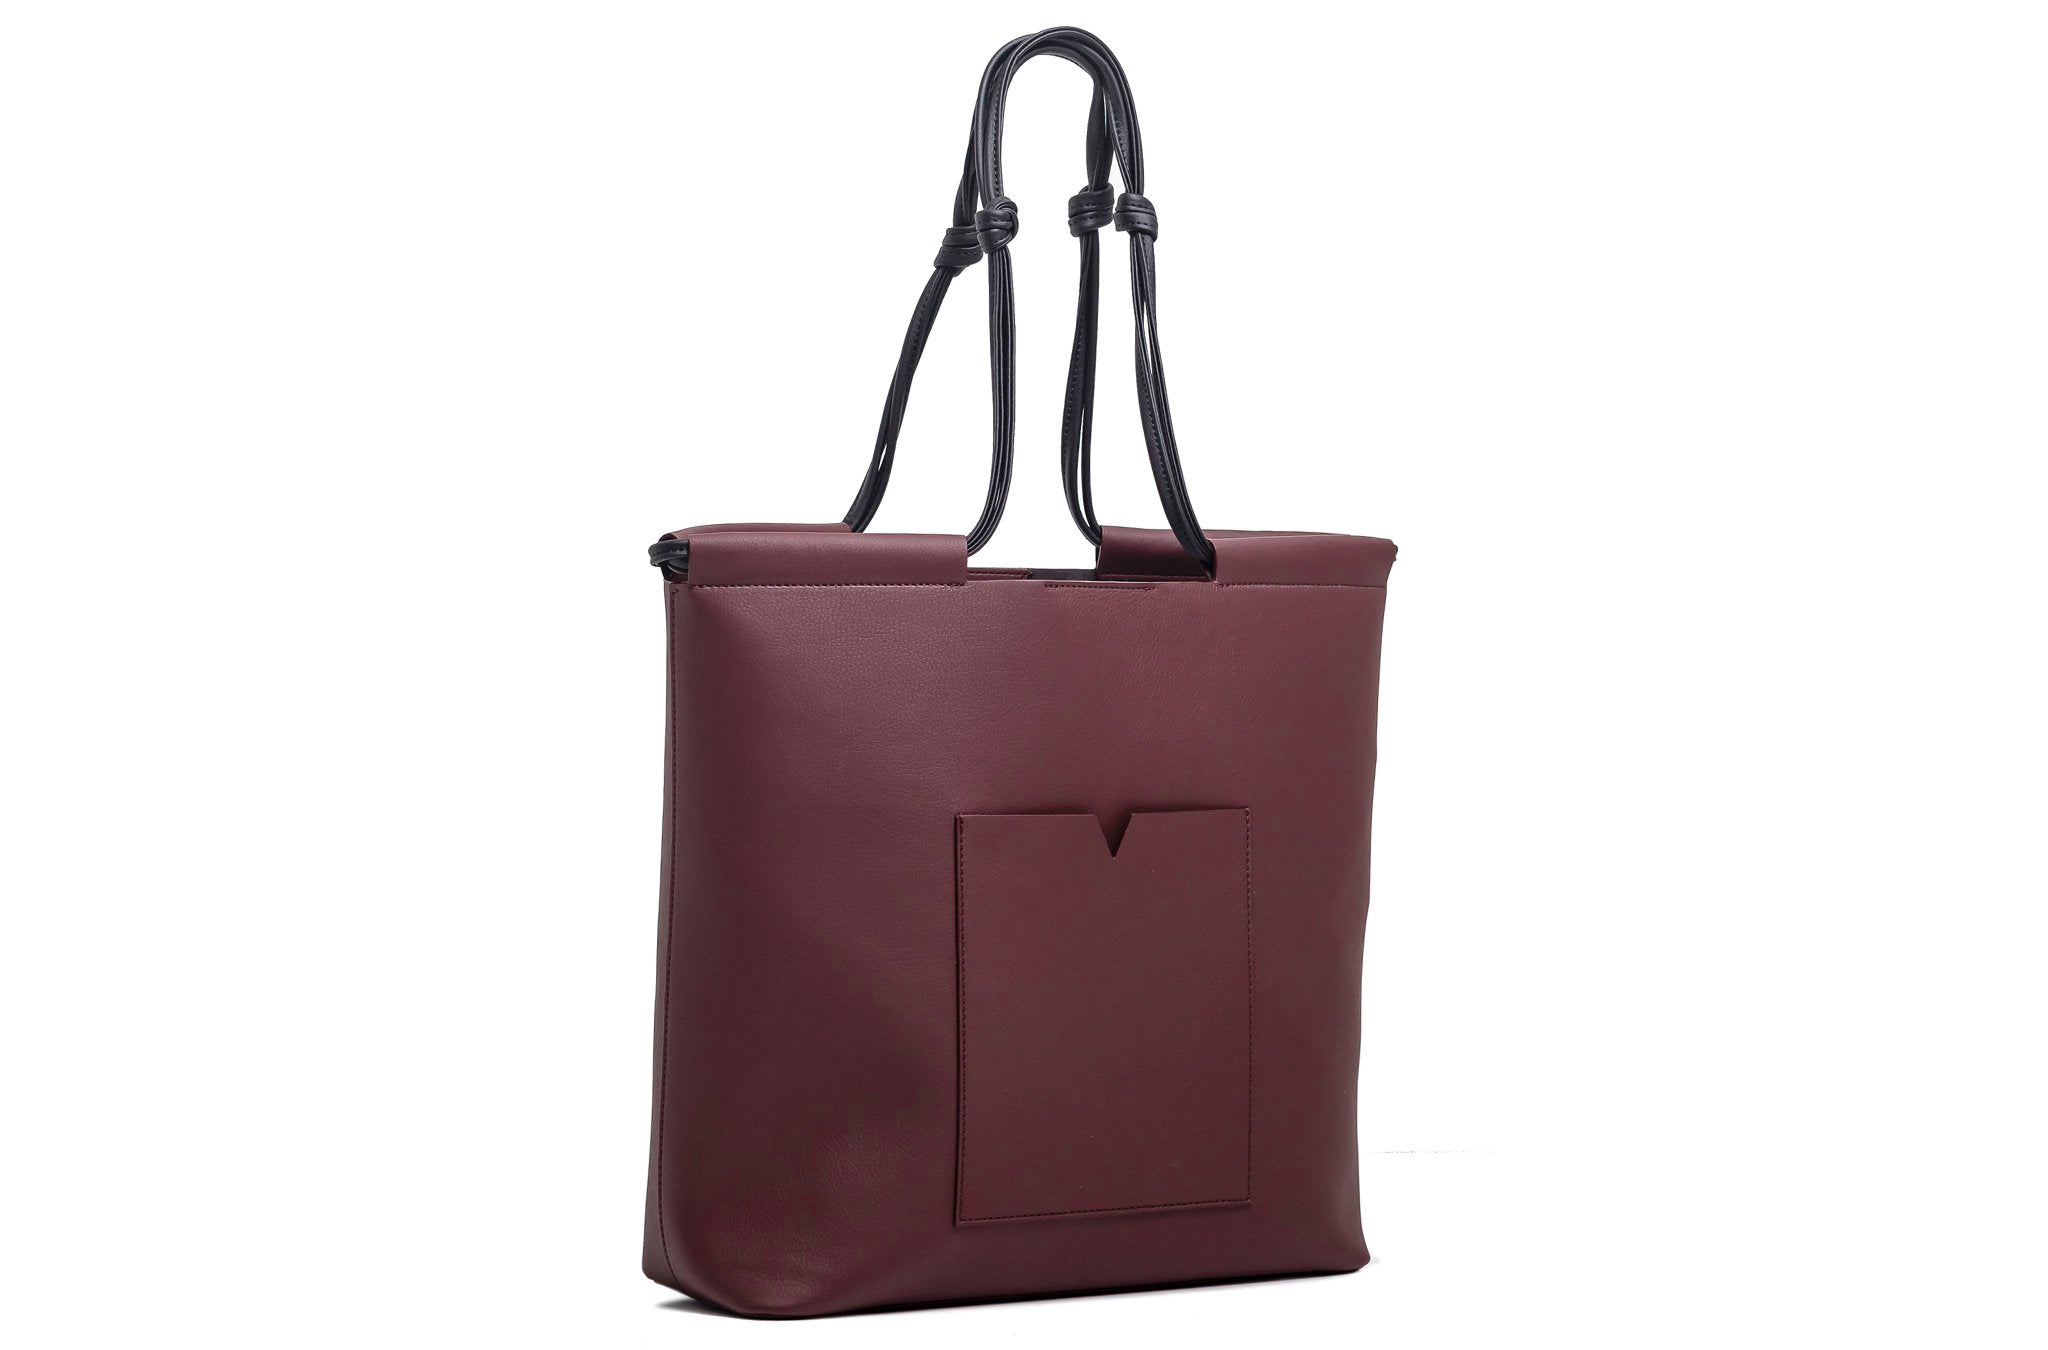 The Market Tote in Technik-Leather in Burgundy and Black